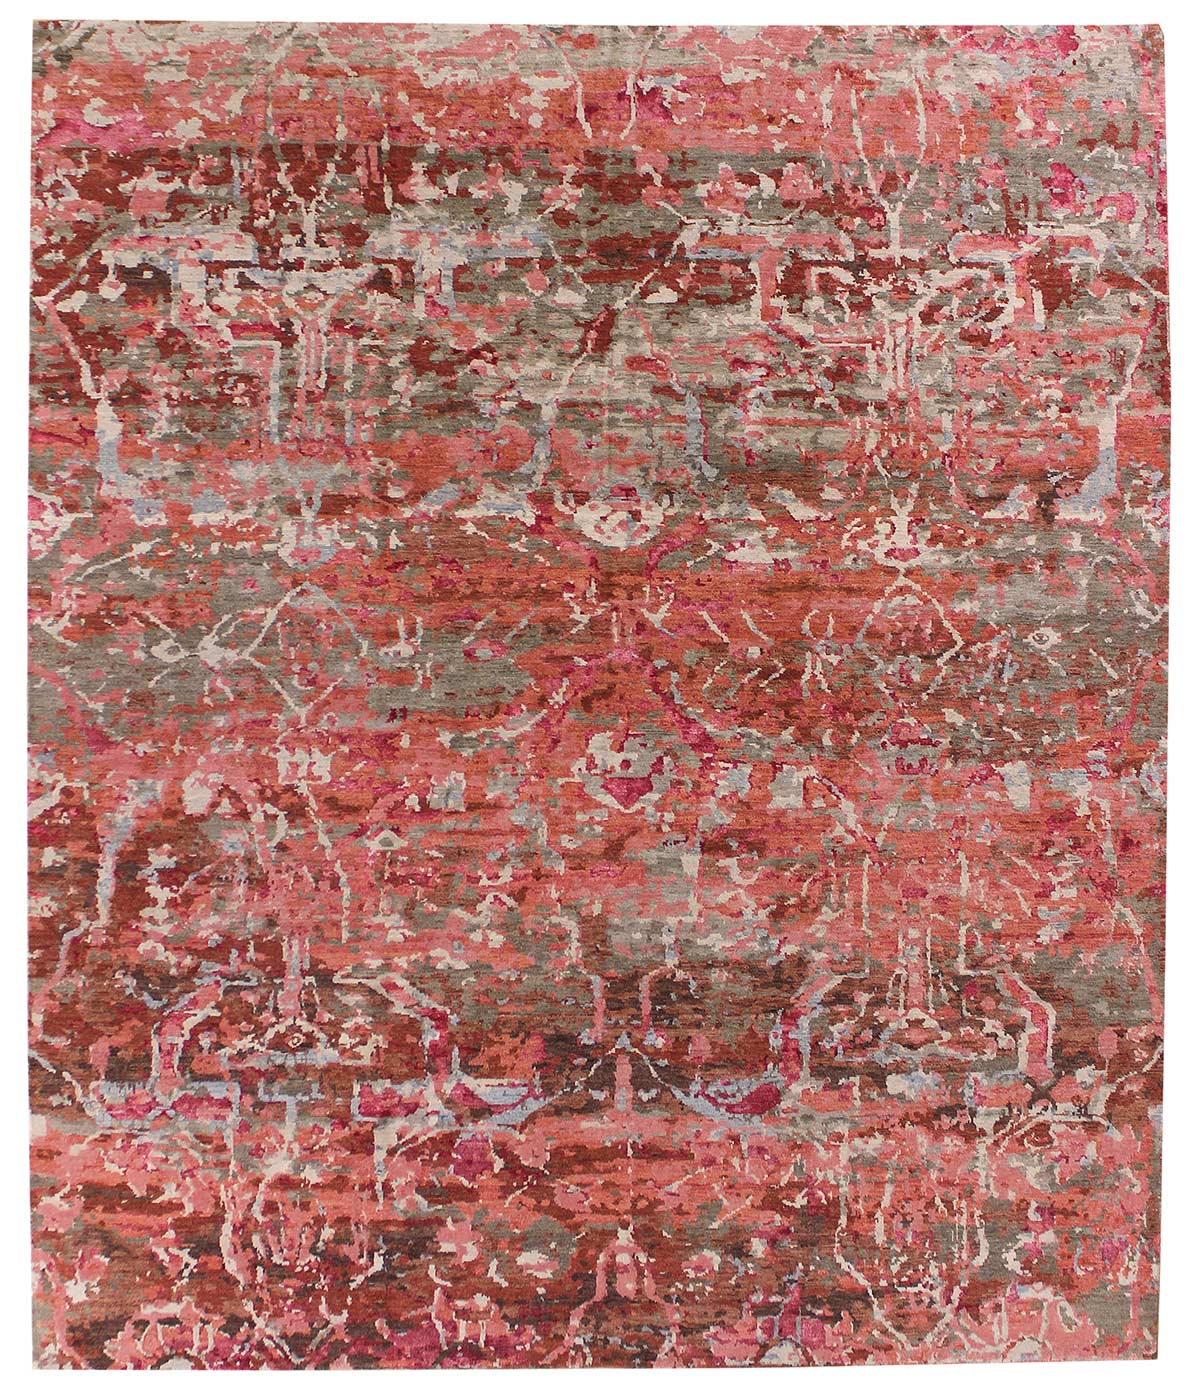 Mehta Handwoven Transitional Rug